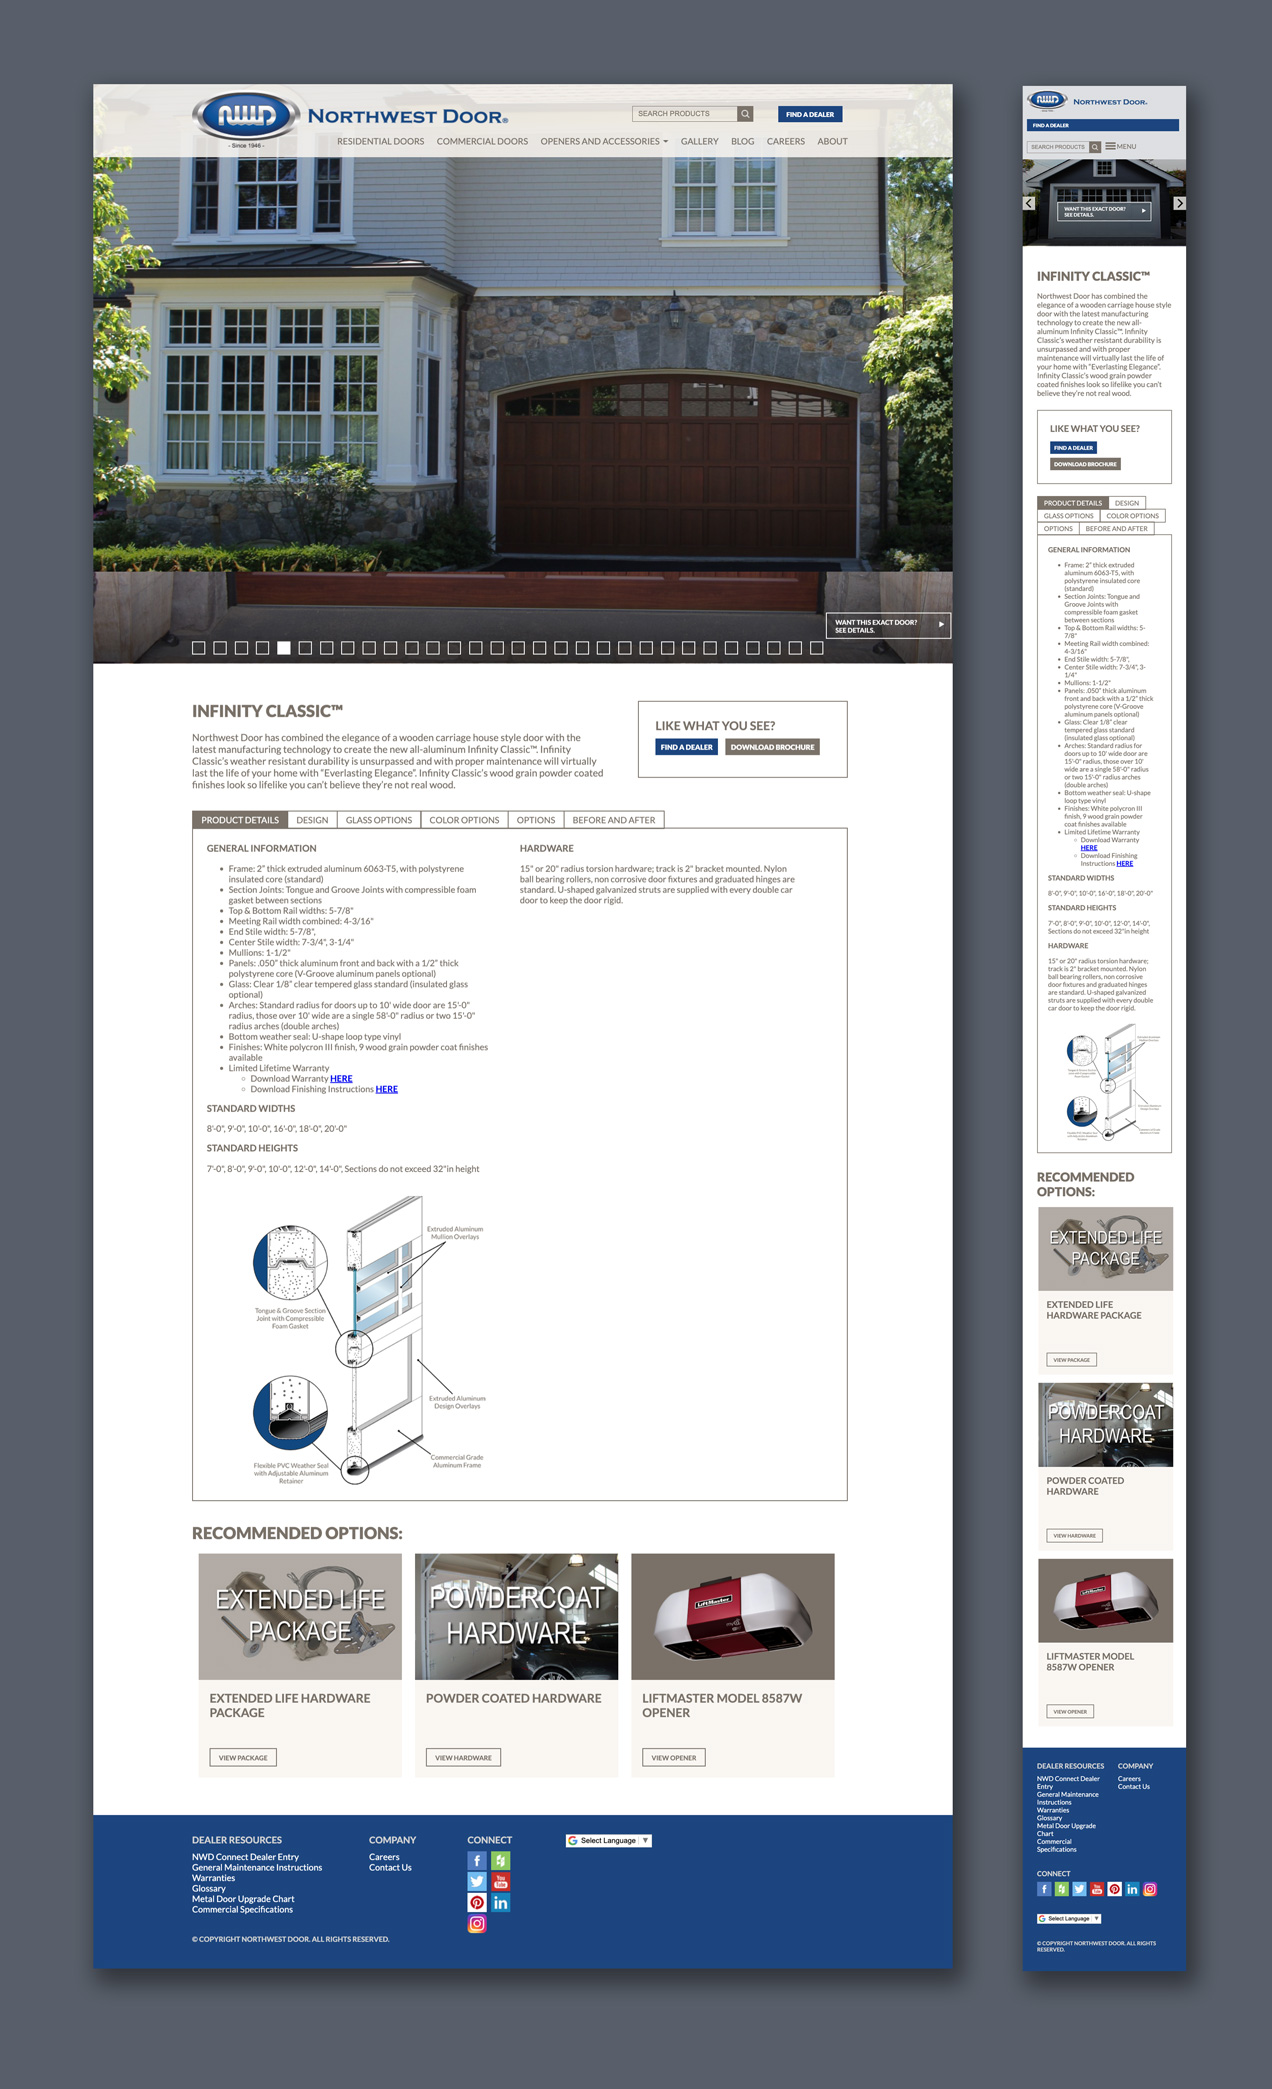 northwest door responsive web site design and development for stronger marketing and customer engagement